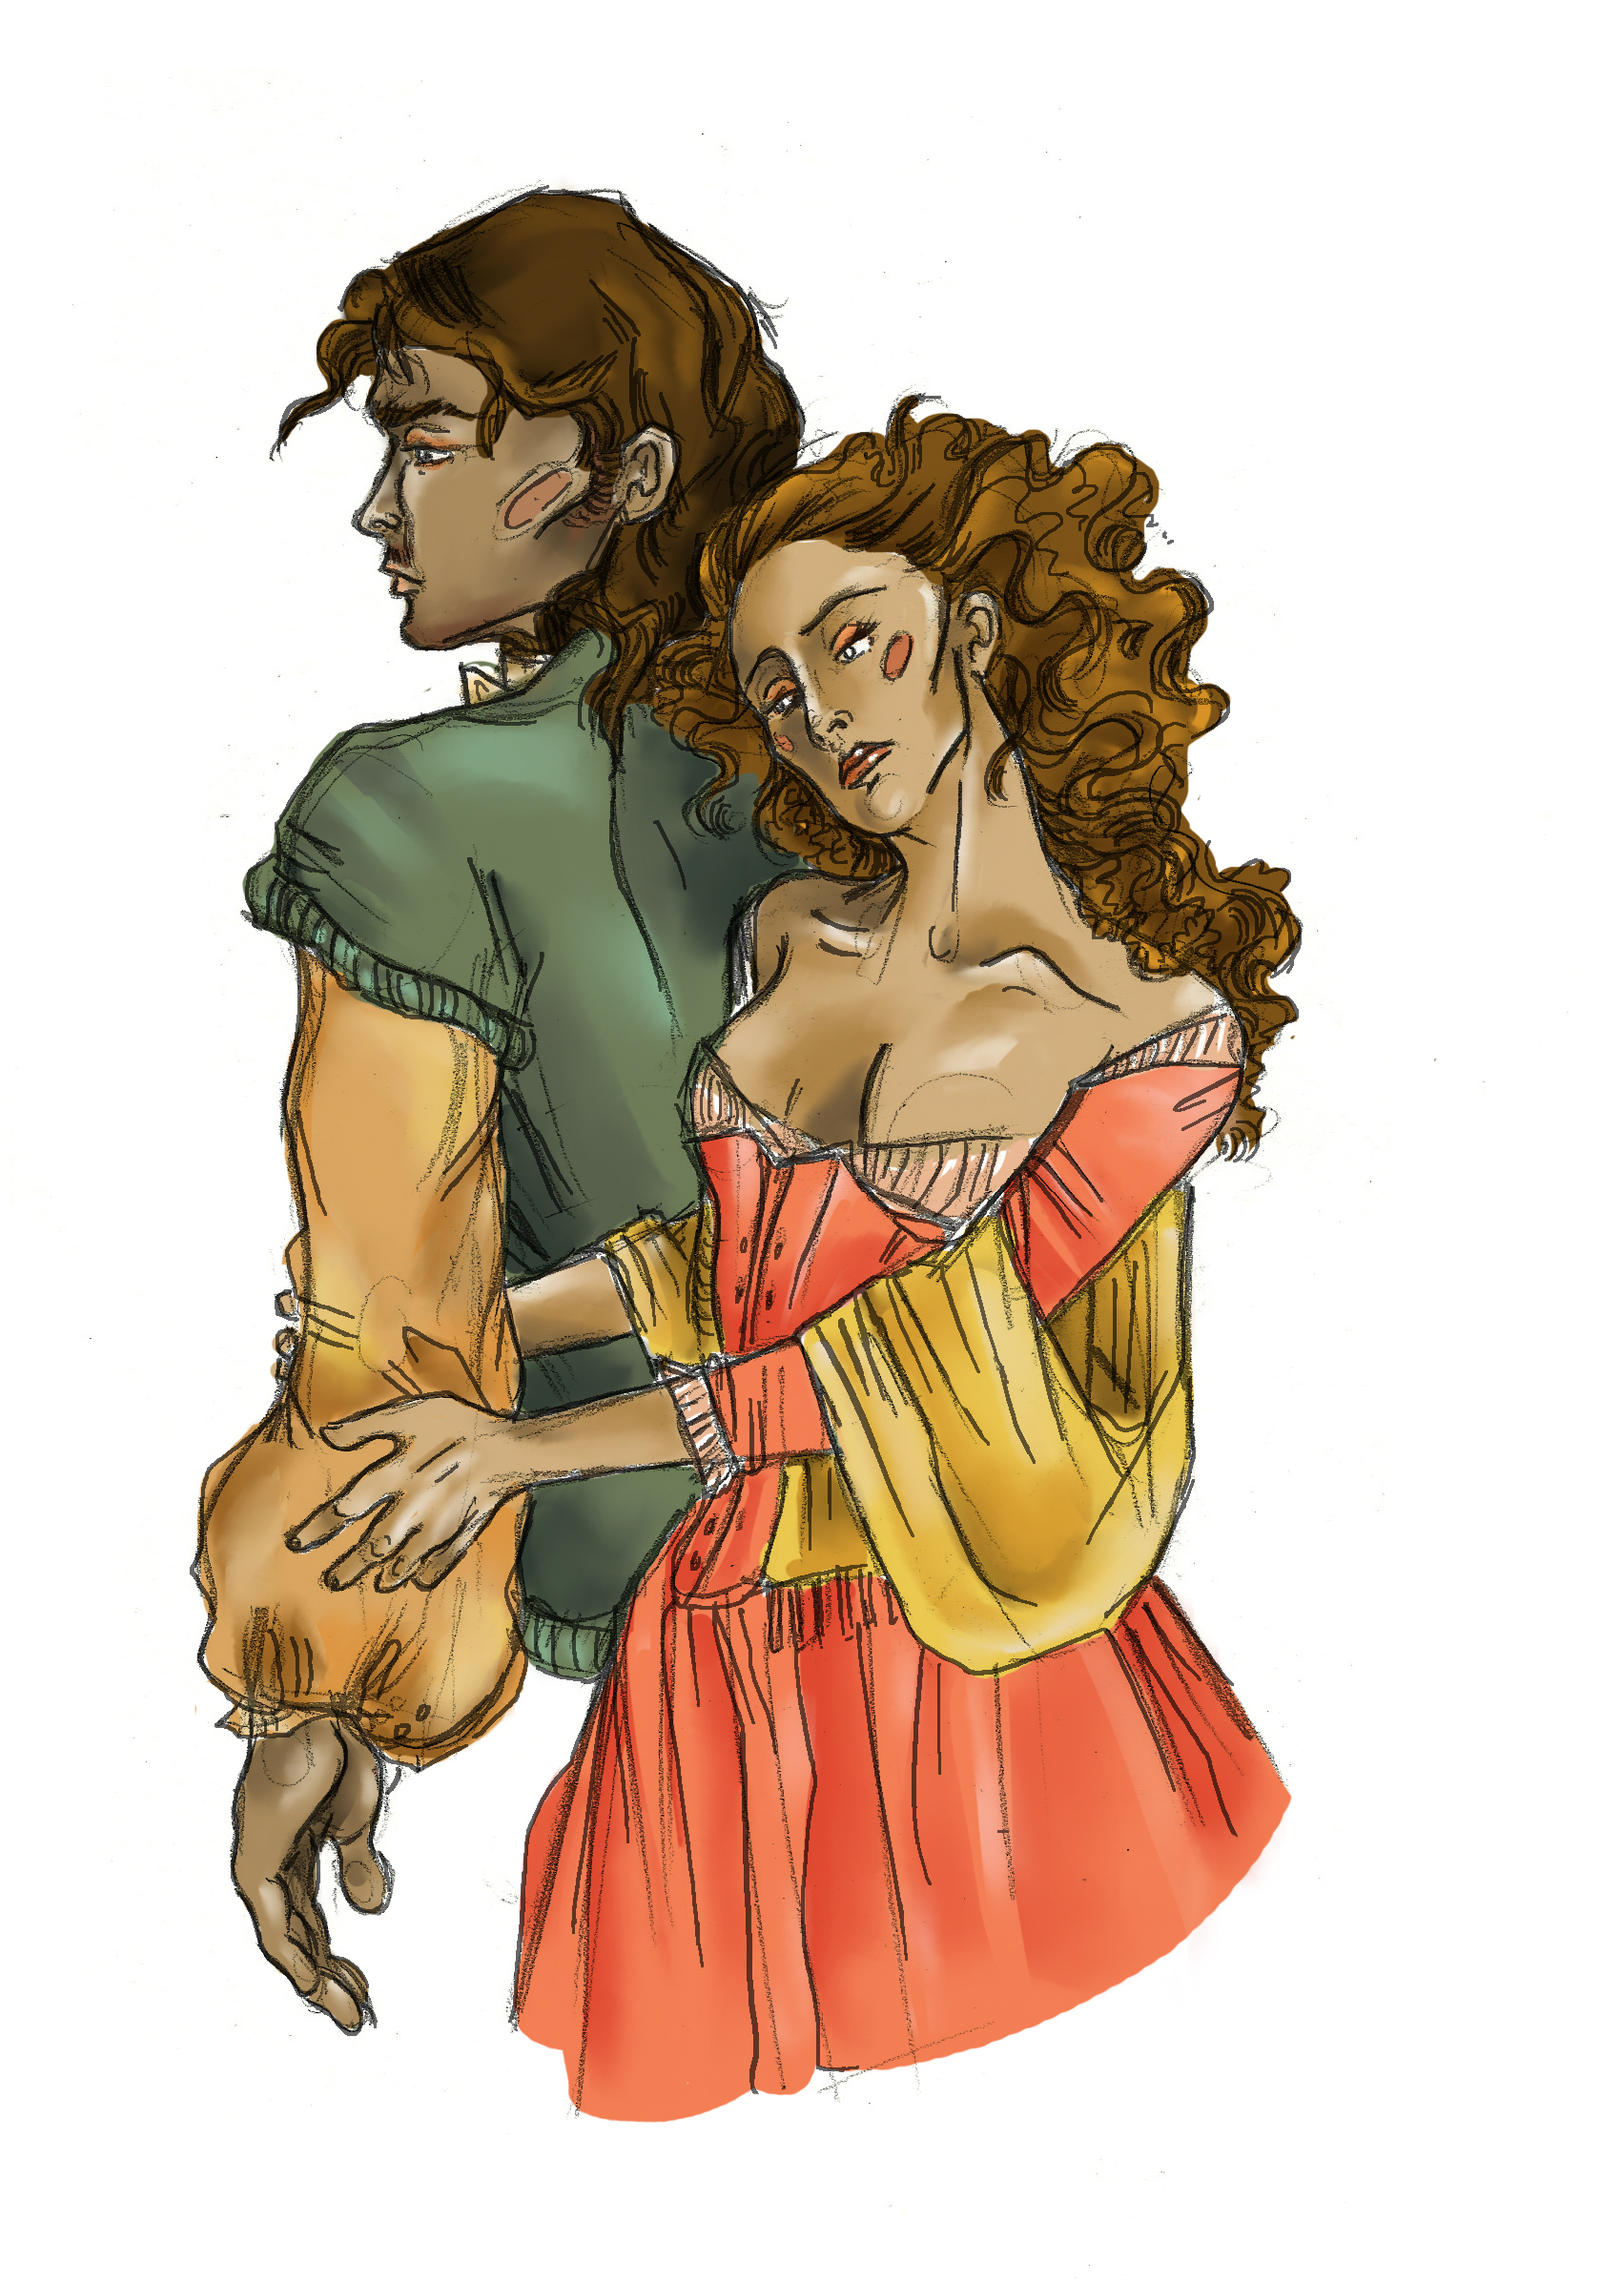 cathy and heathcliff wuthering heights by victoriaupson on cathy and heathcliff wuthering heights by victoriaupson